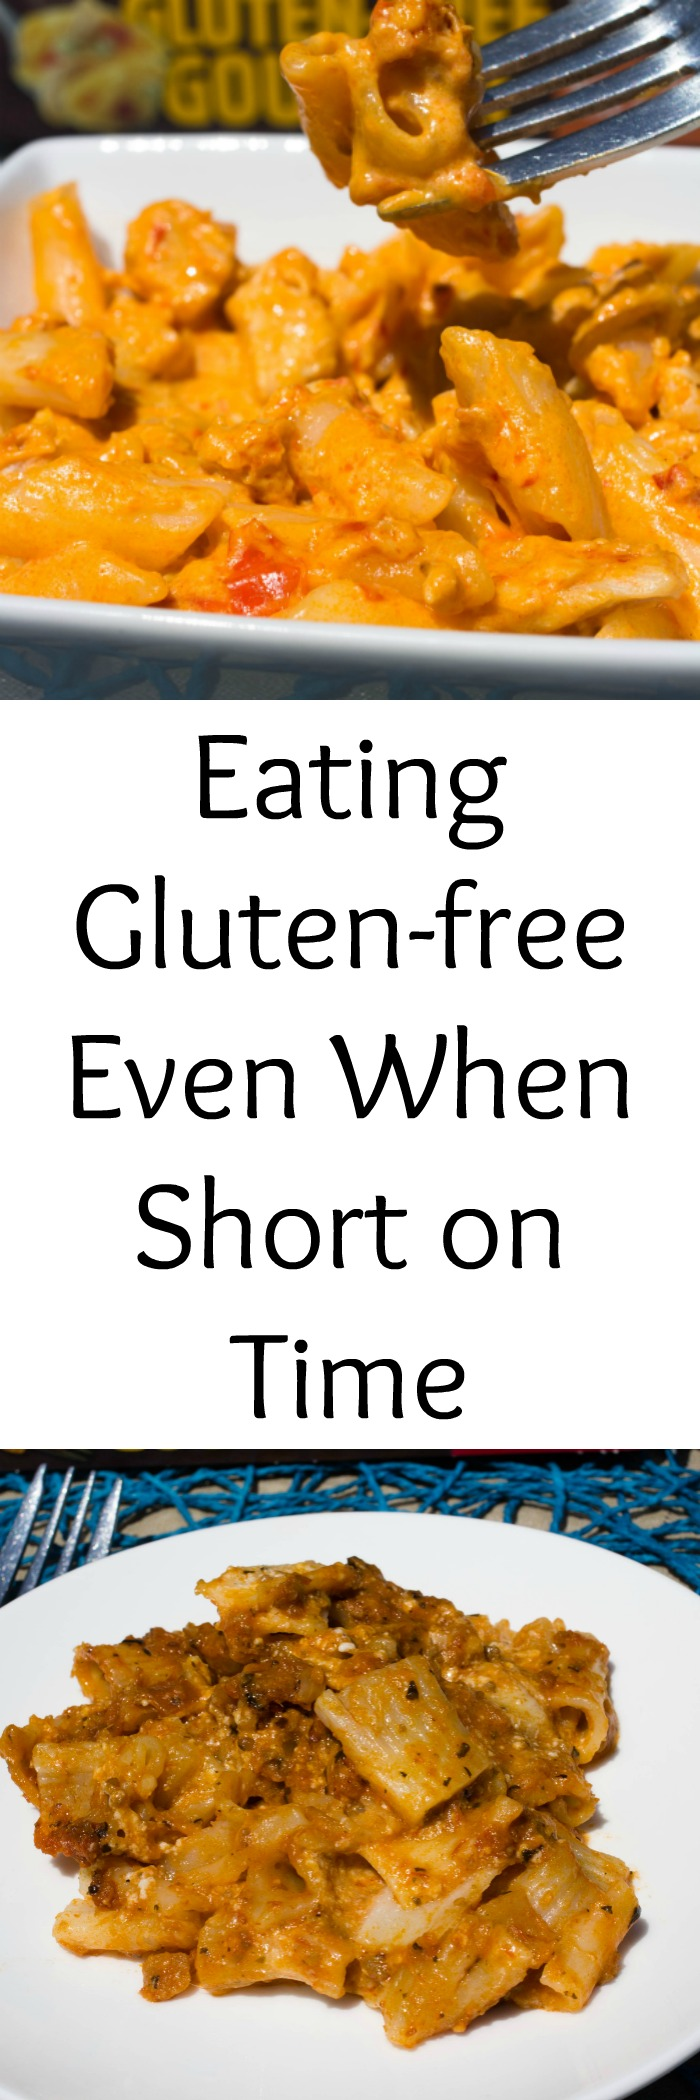 Eating Gluten free when you are short on time can be challenging. Here are some simple tips to help make it easier even if you only have 5 minutes